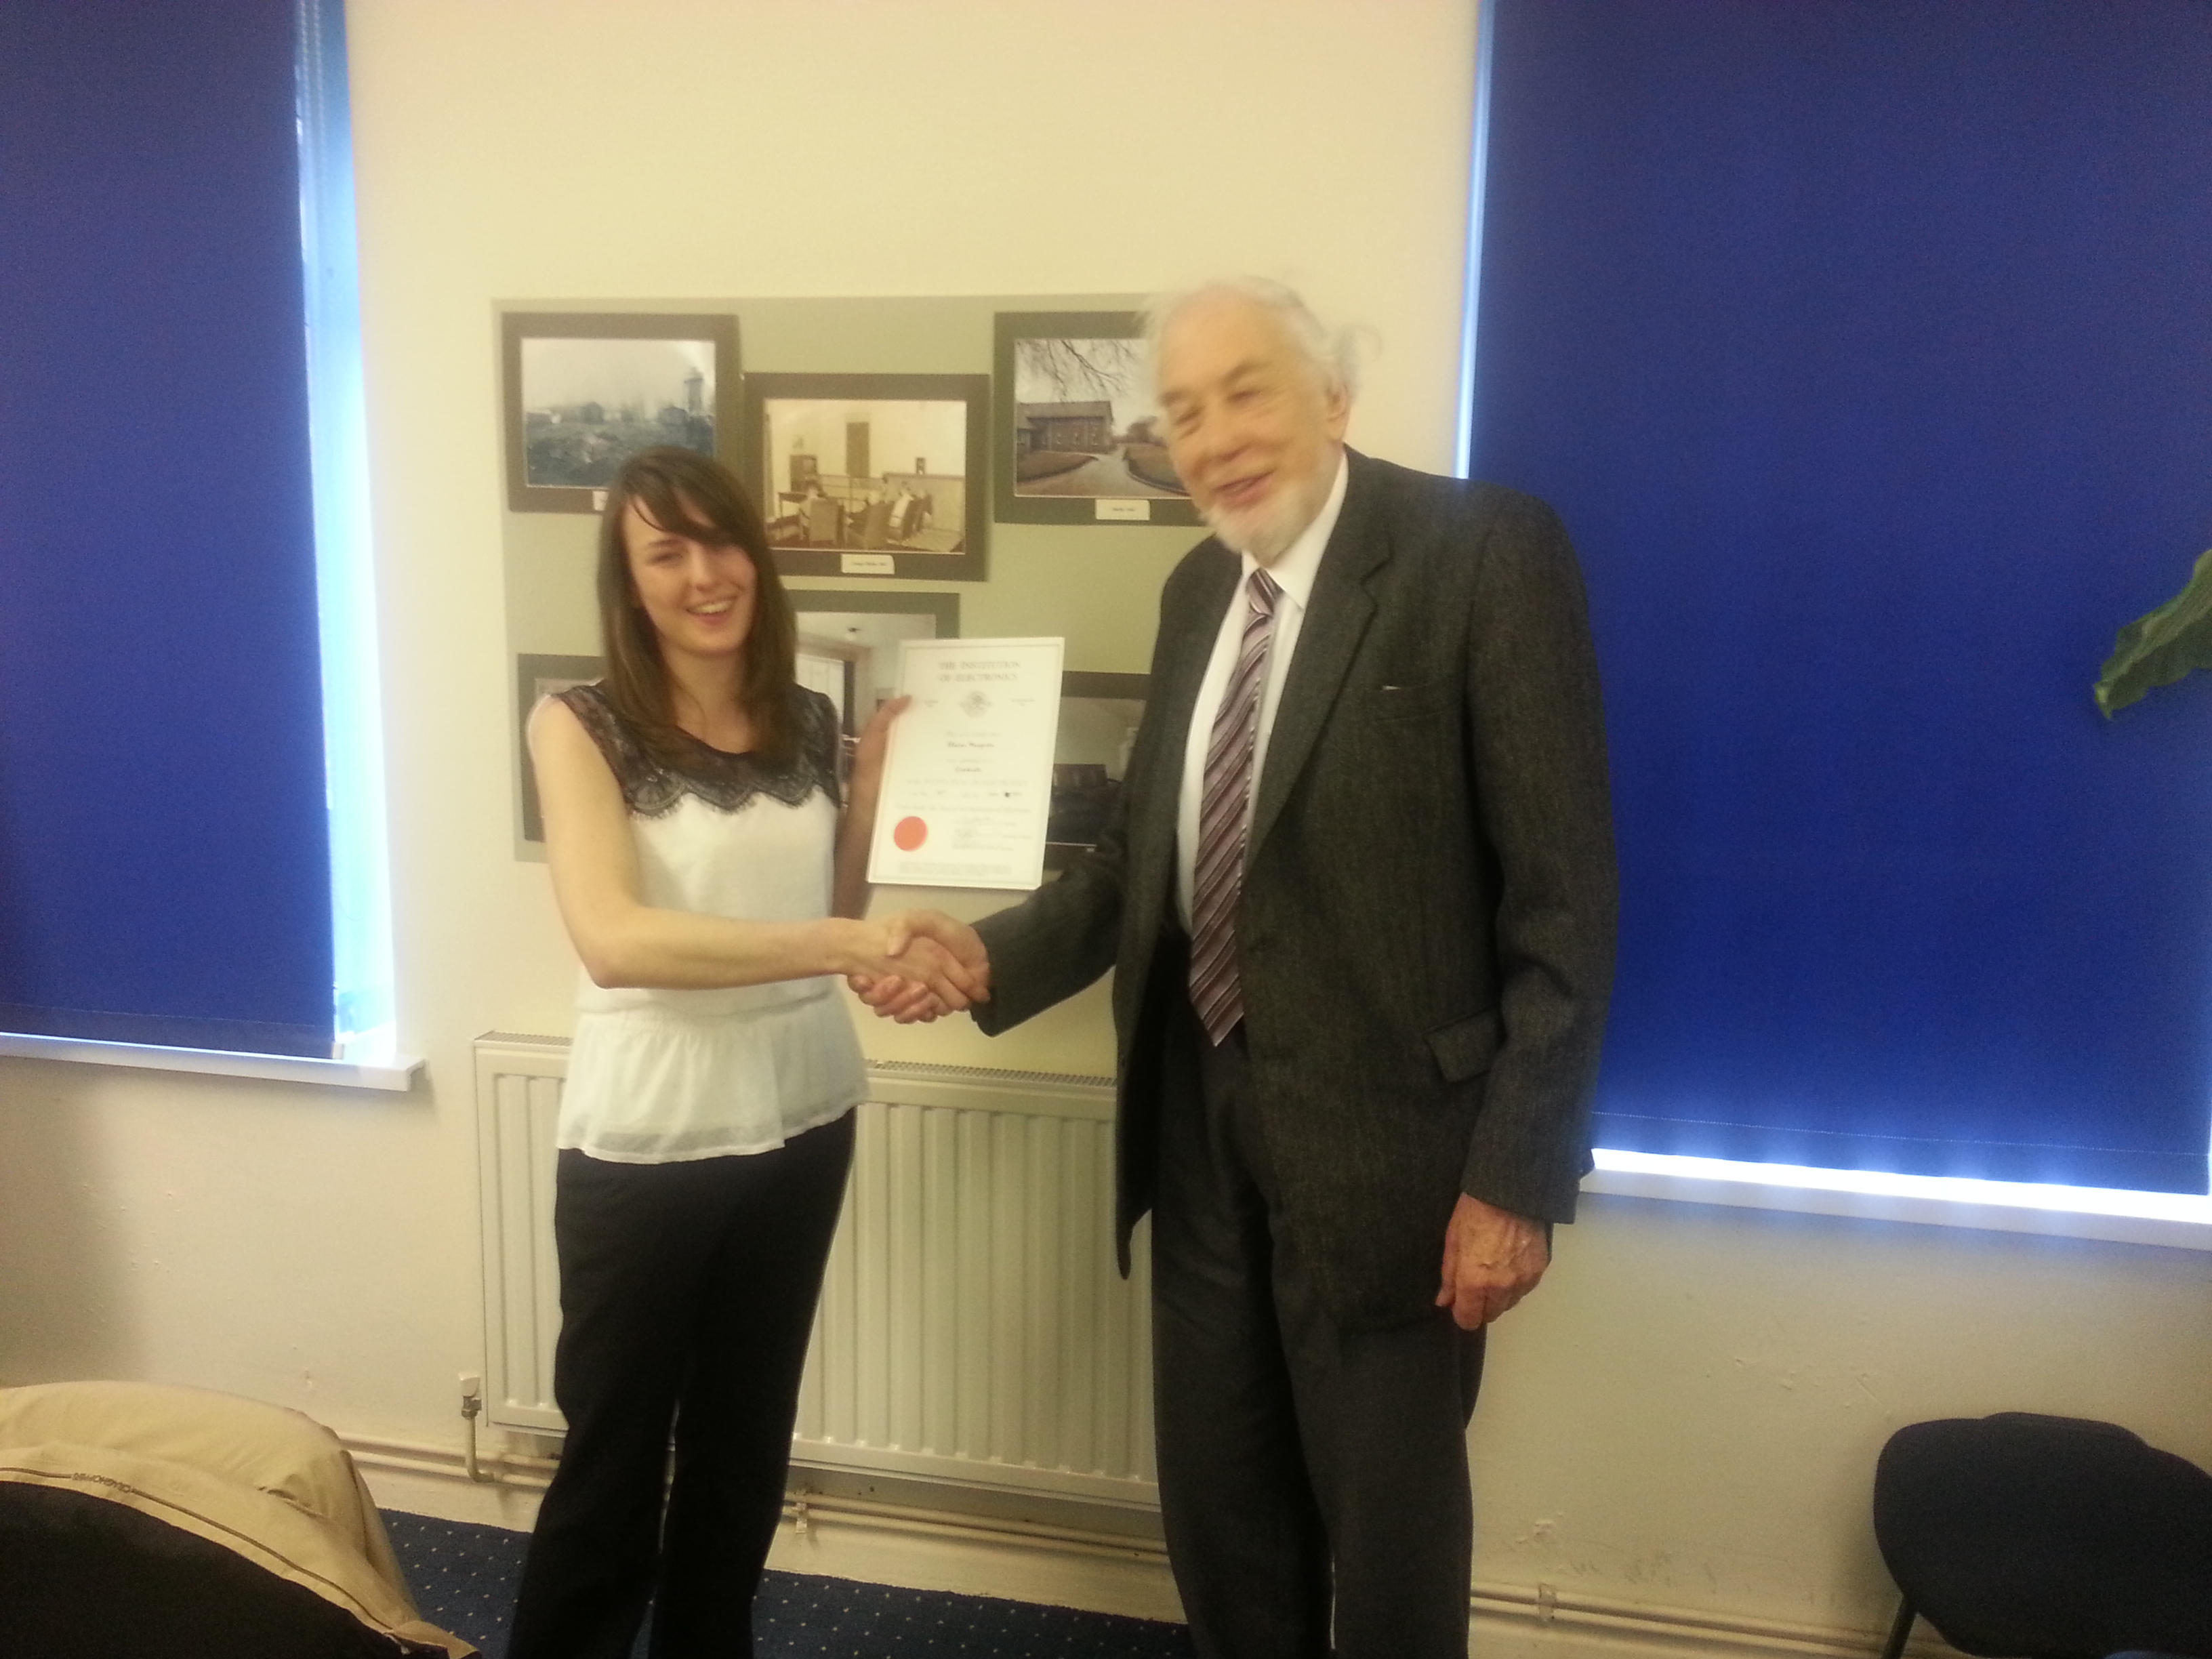 Elaine receiving her certificate